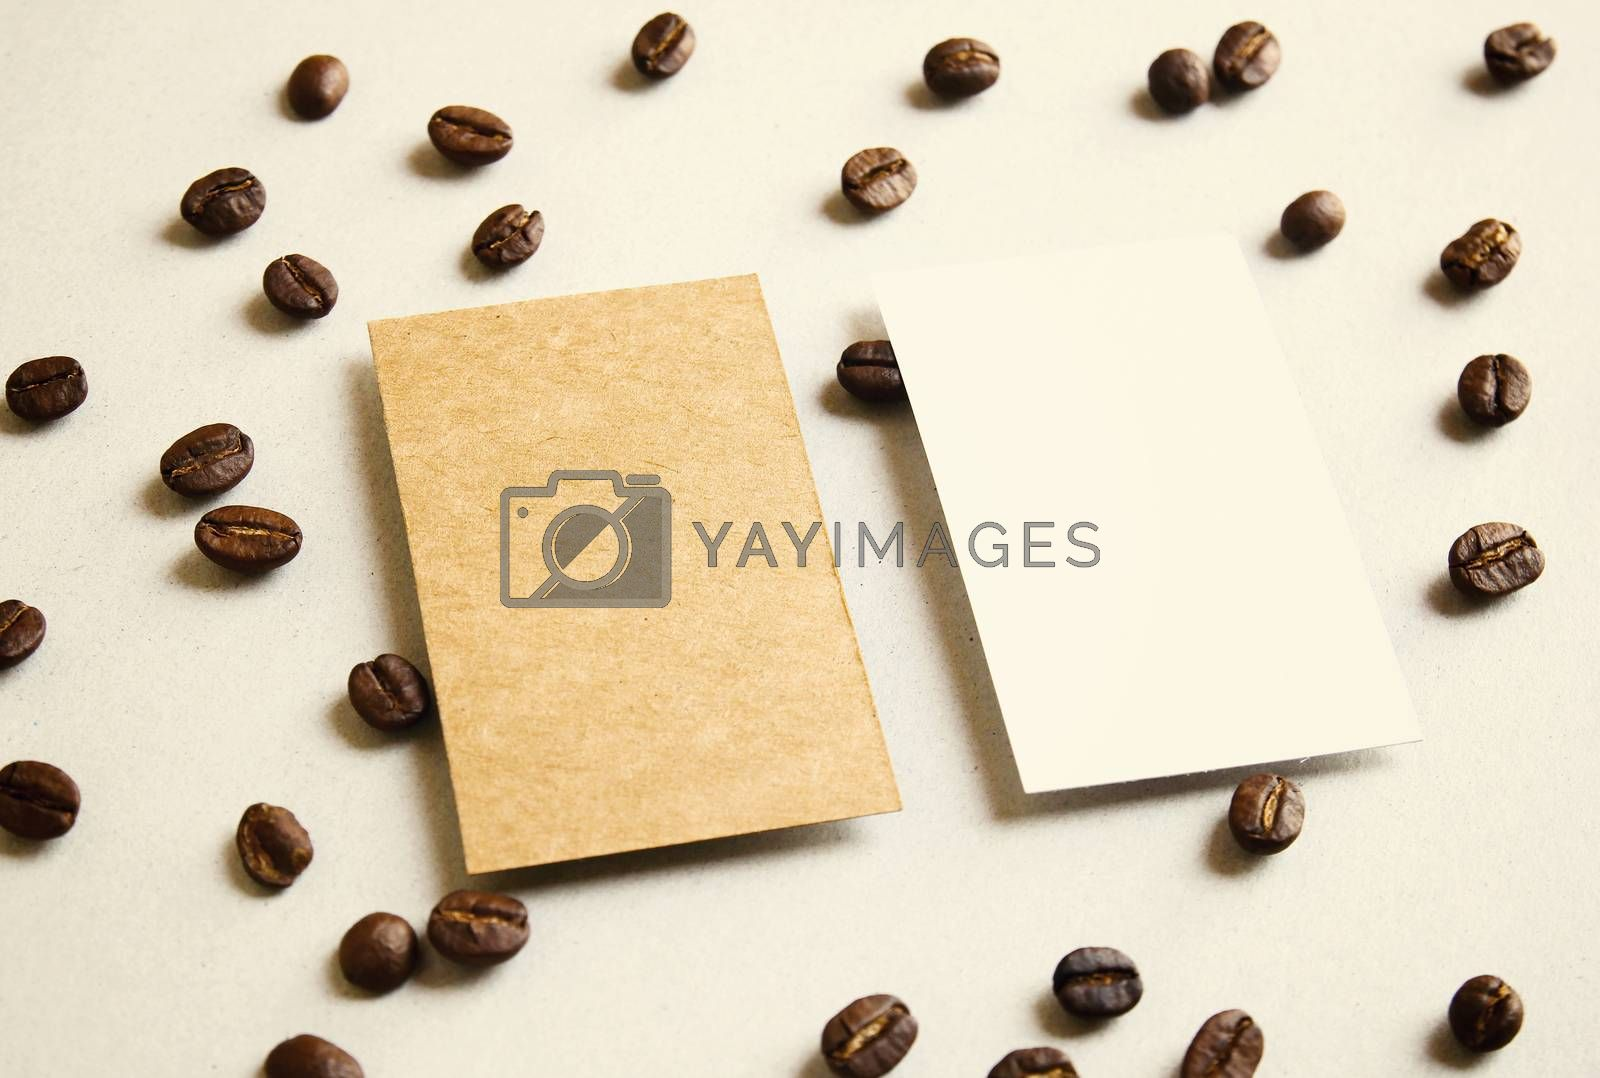 Blank business name card on coffee beans with retro filter effect